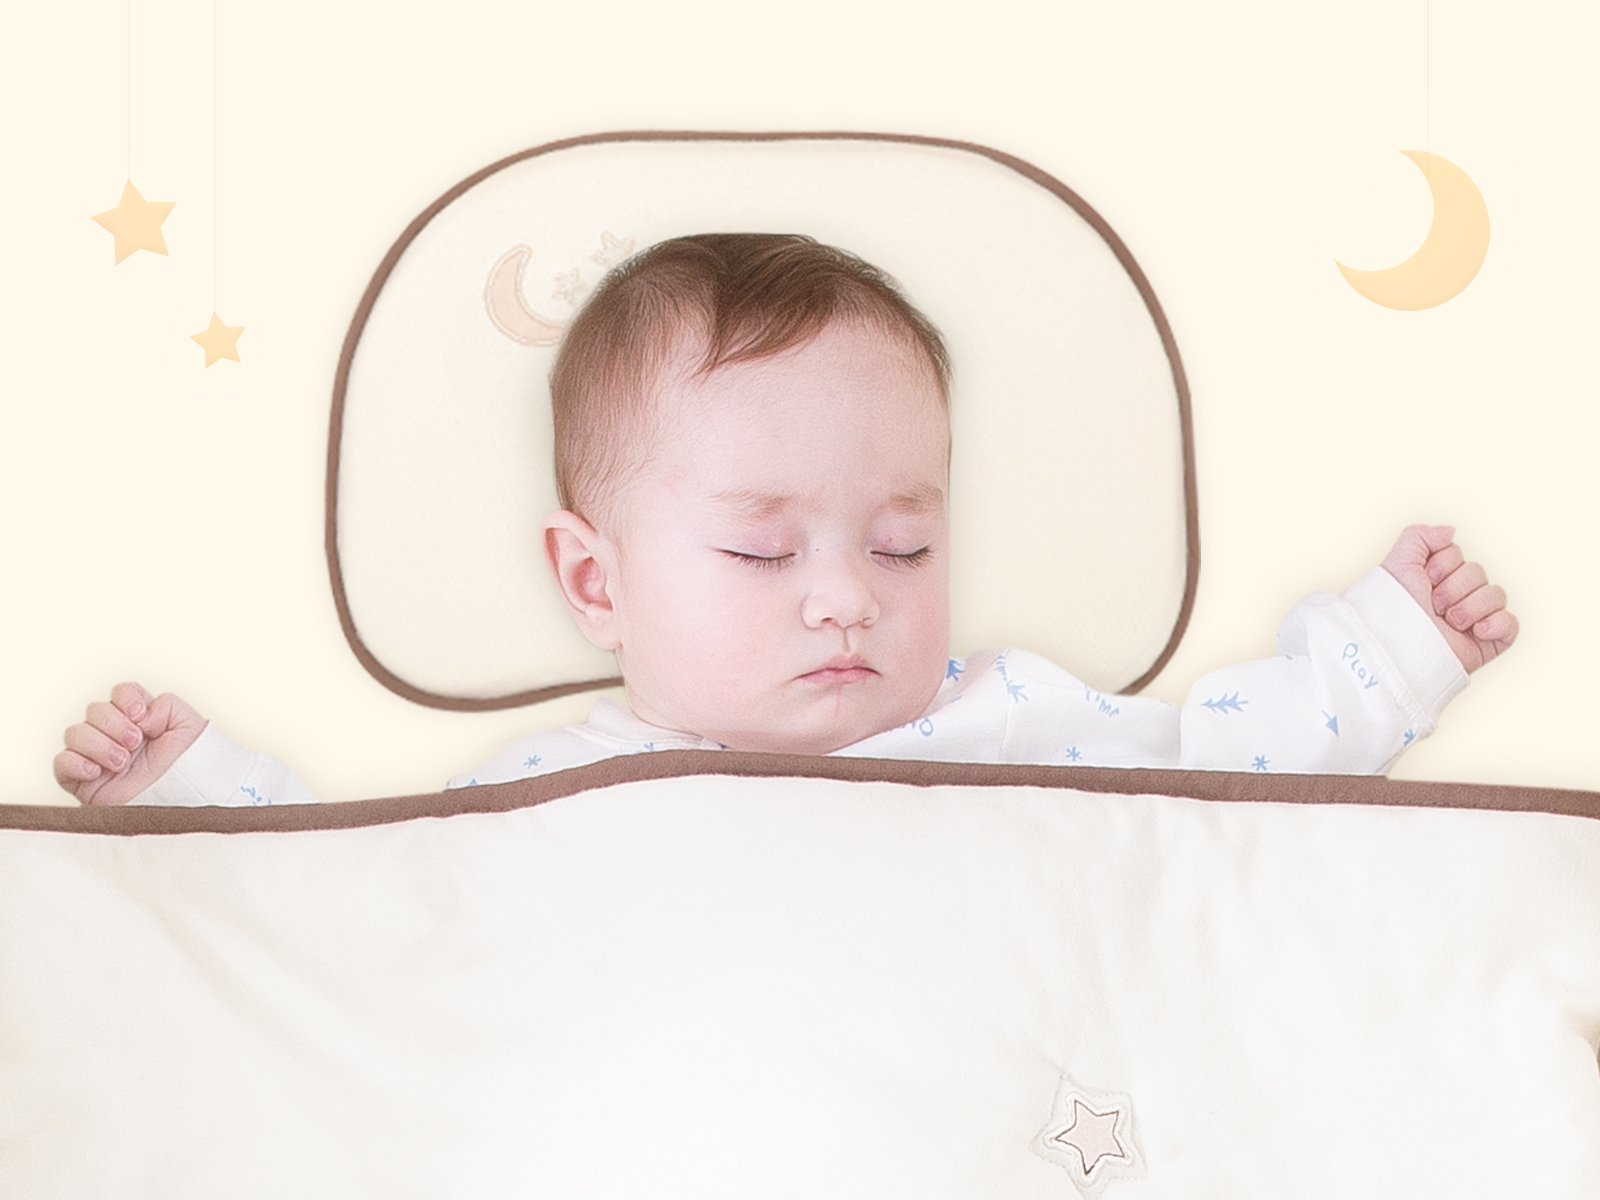 Baby Memory Foam Pillow for Newborn Prevent Flat Head Infant Sleep Positioner Pillow Set with Organic Pillowcase